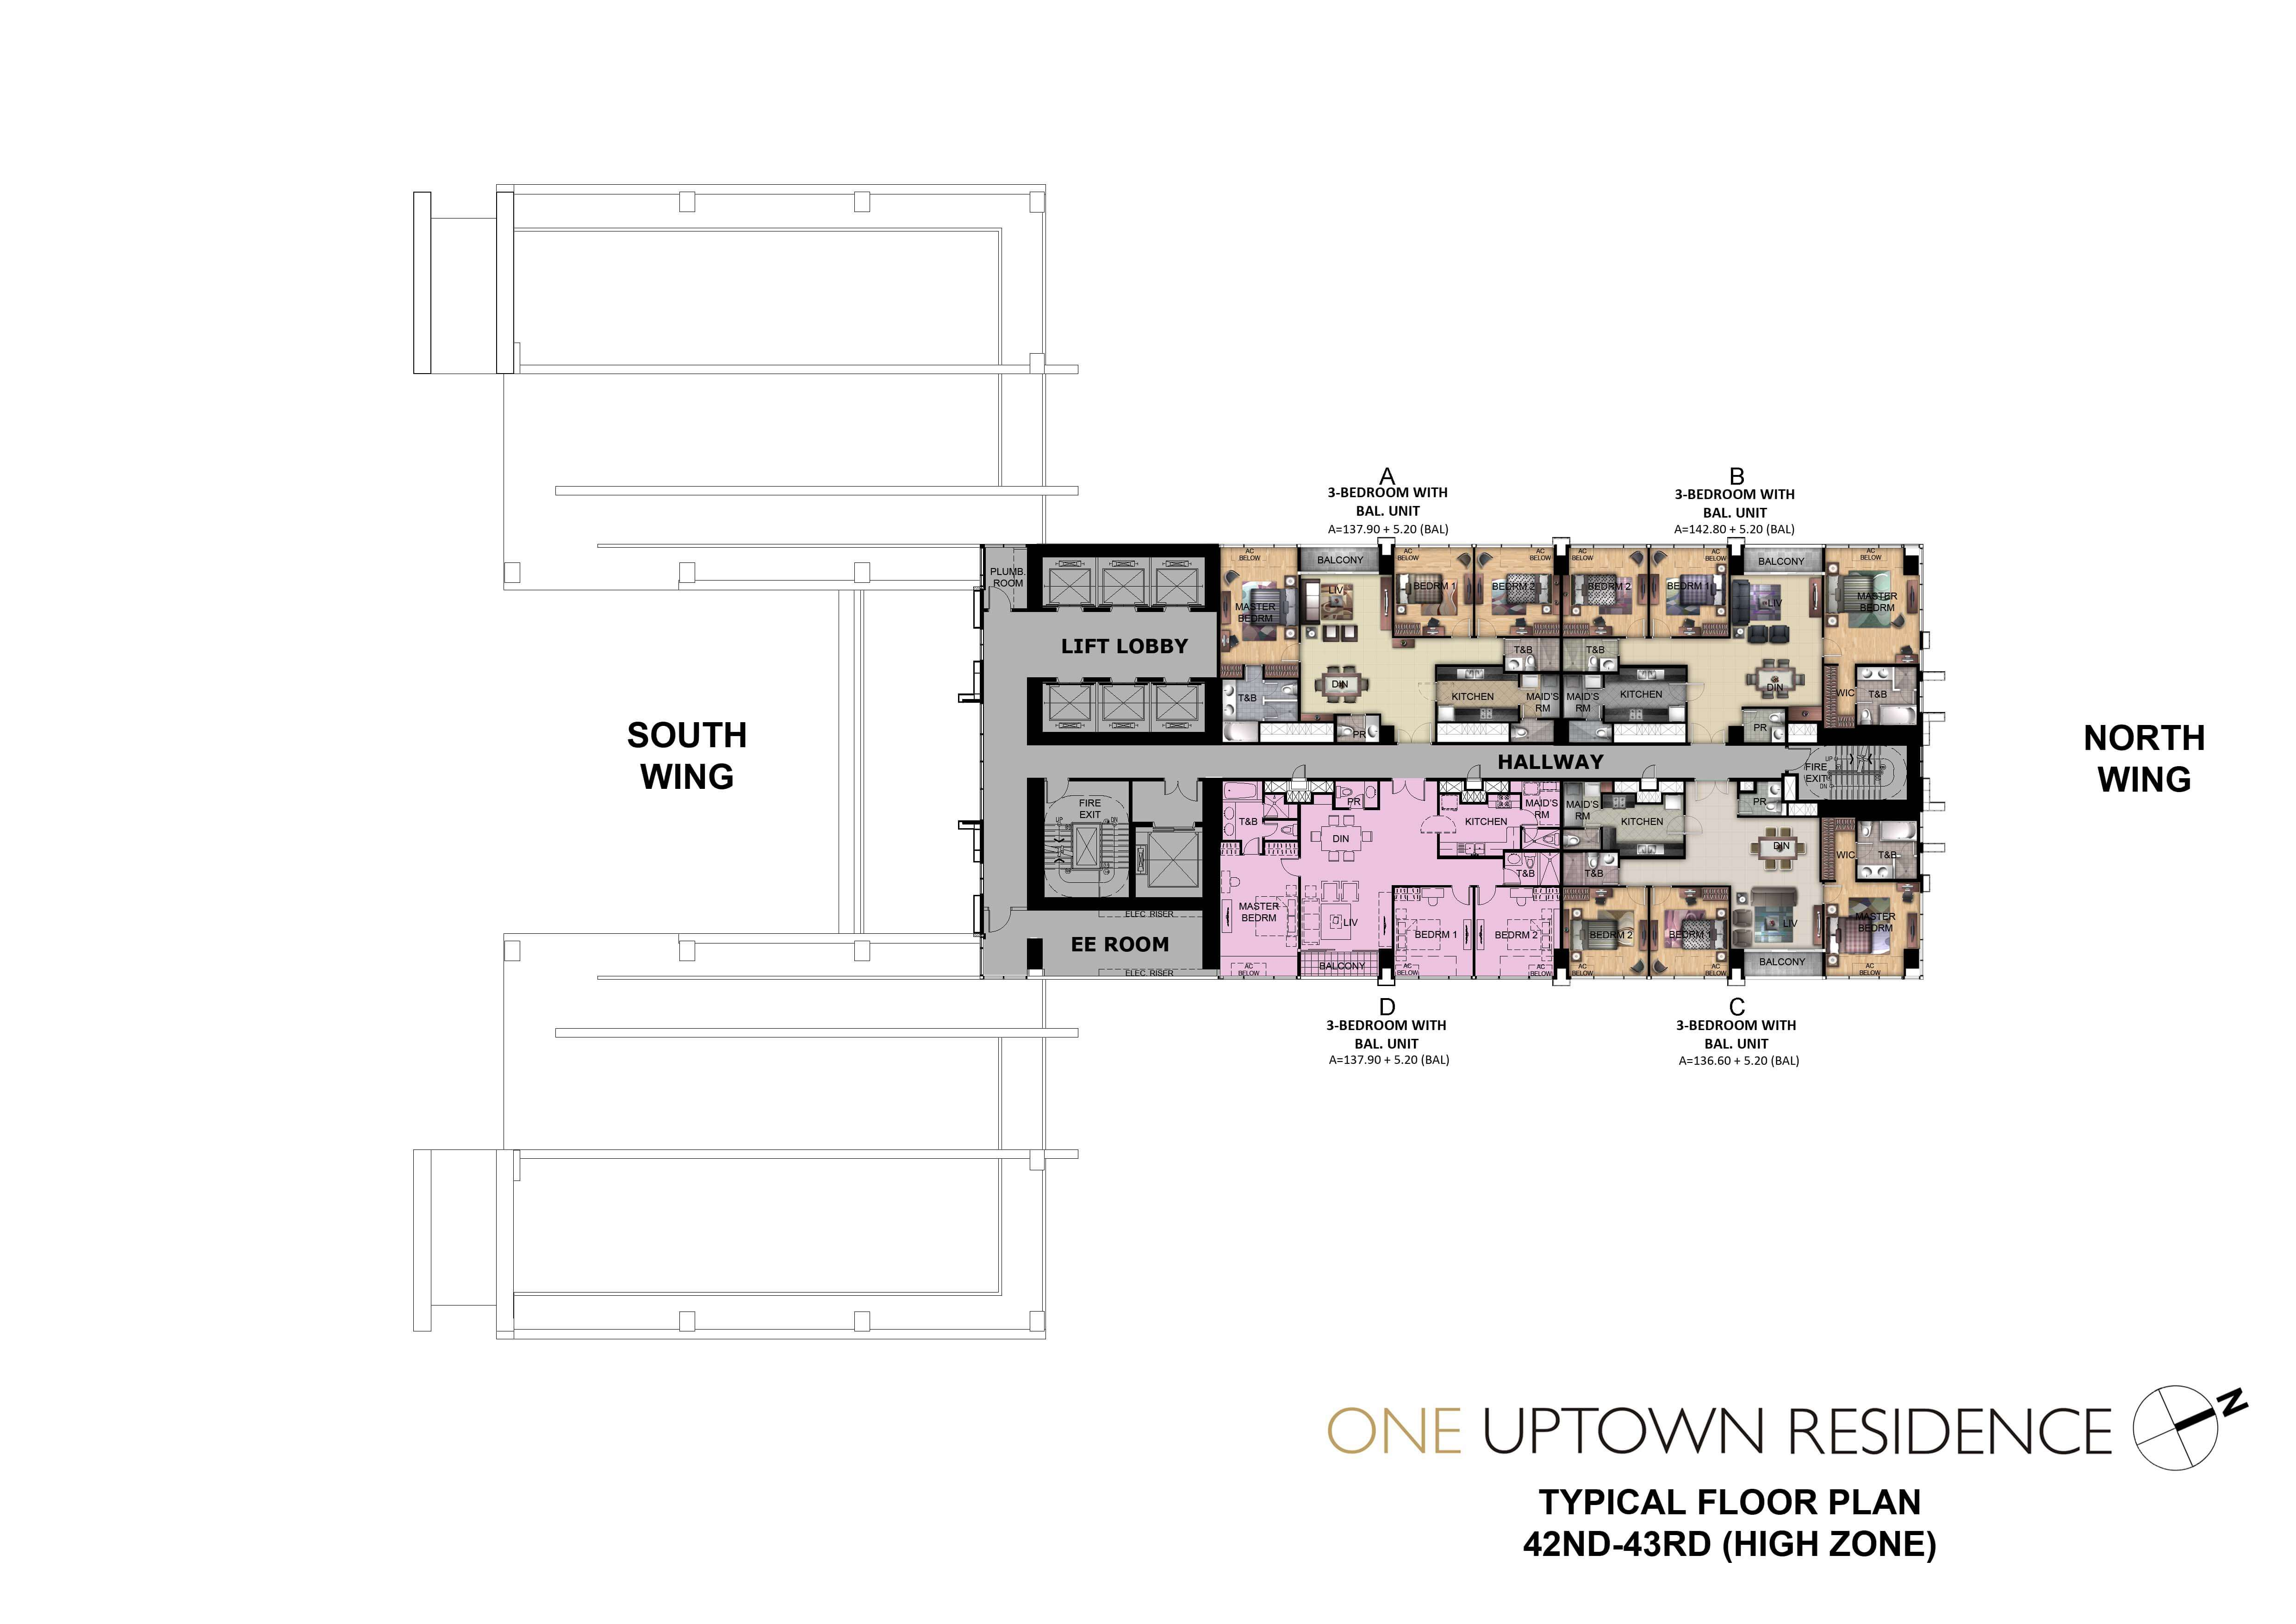 One Uptown Residence-Floor-Plans-Condos-for-sale-42ND-43RD